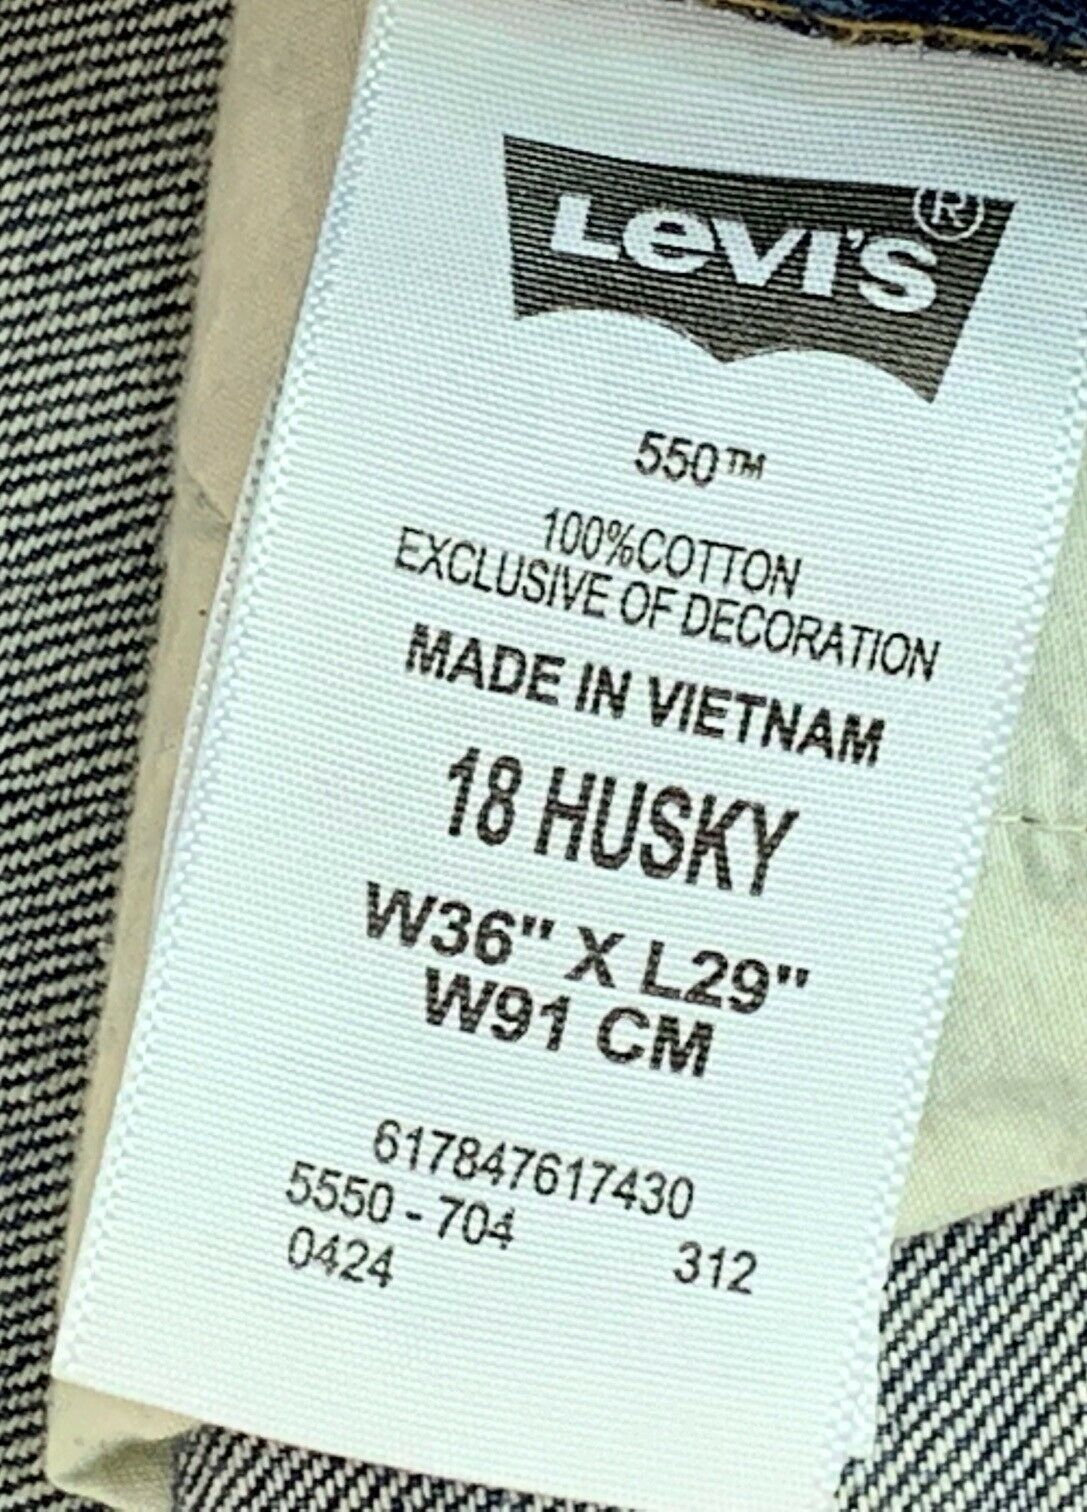 LEVI  550 BOY'S RELAXED FIT JEANS 18 Husky 36 x 29  image 2